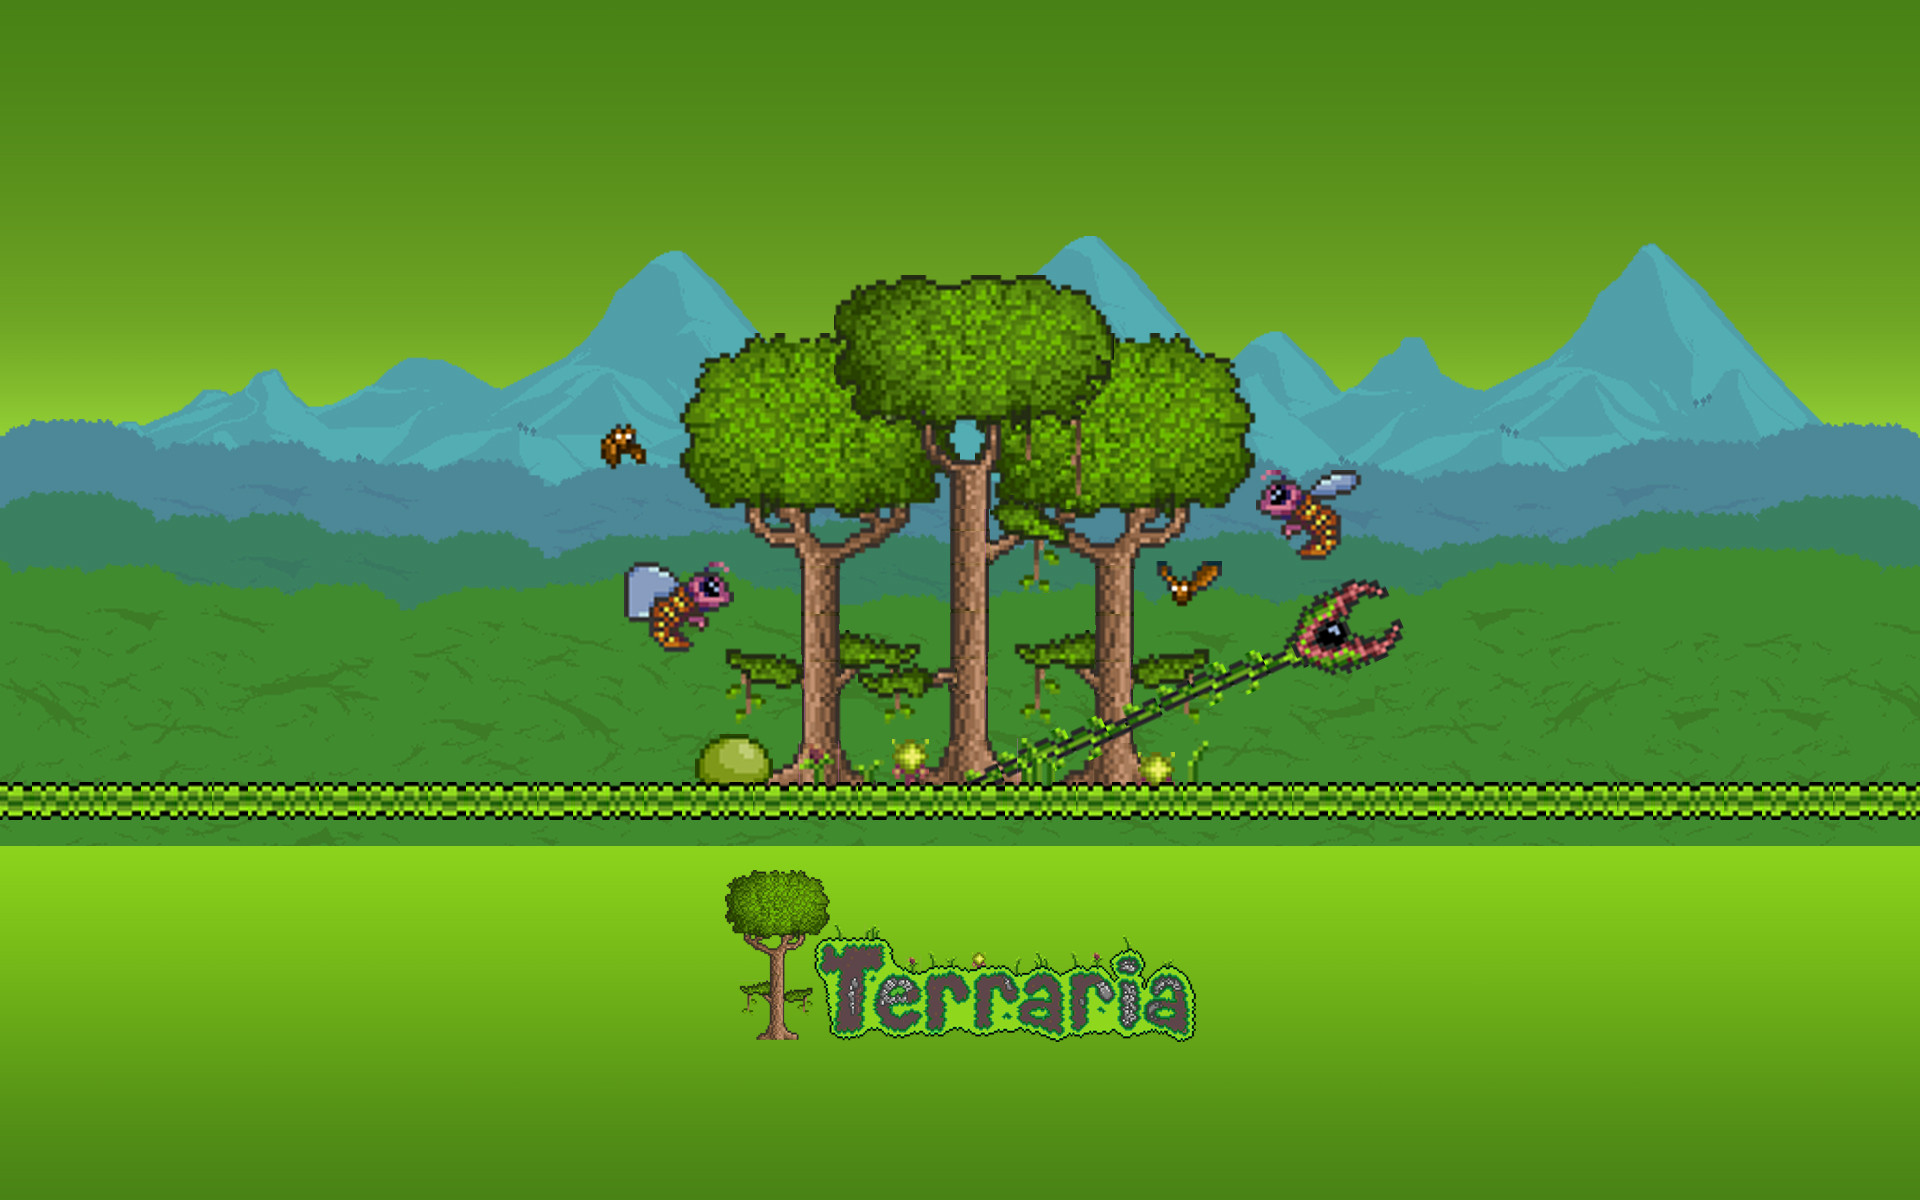 Terraria Wallpaper Try  by MagicalBoyz on DeviantArt 1920x1200